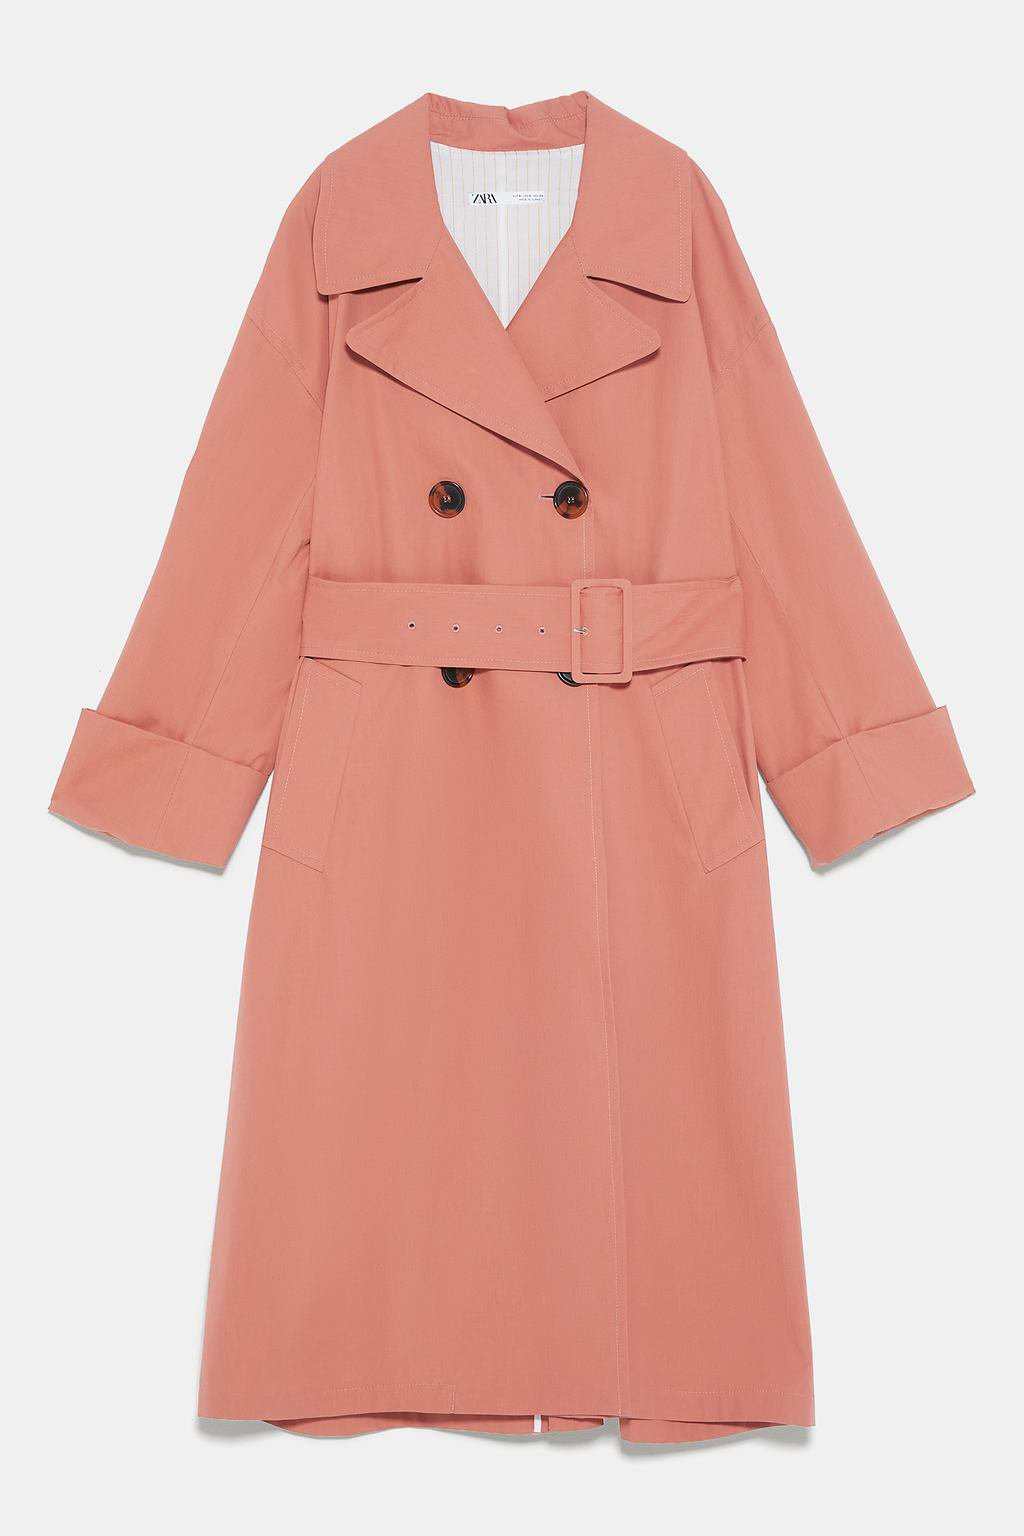 BELTED TRENCH COAT - Trench Coats-COATS-WOMAN | ZARA United States